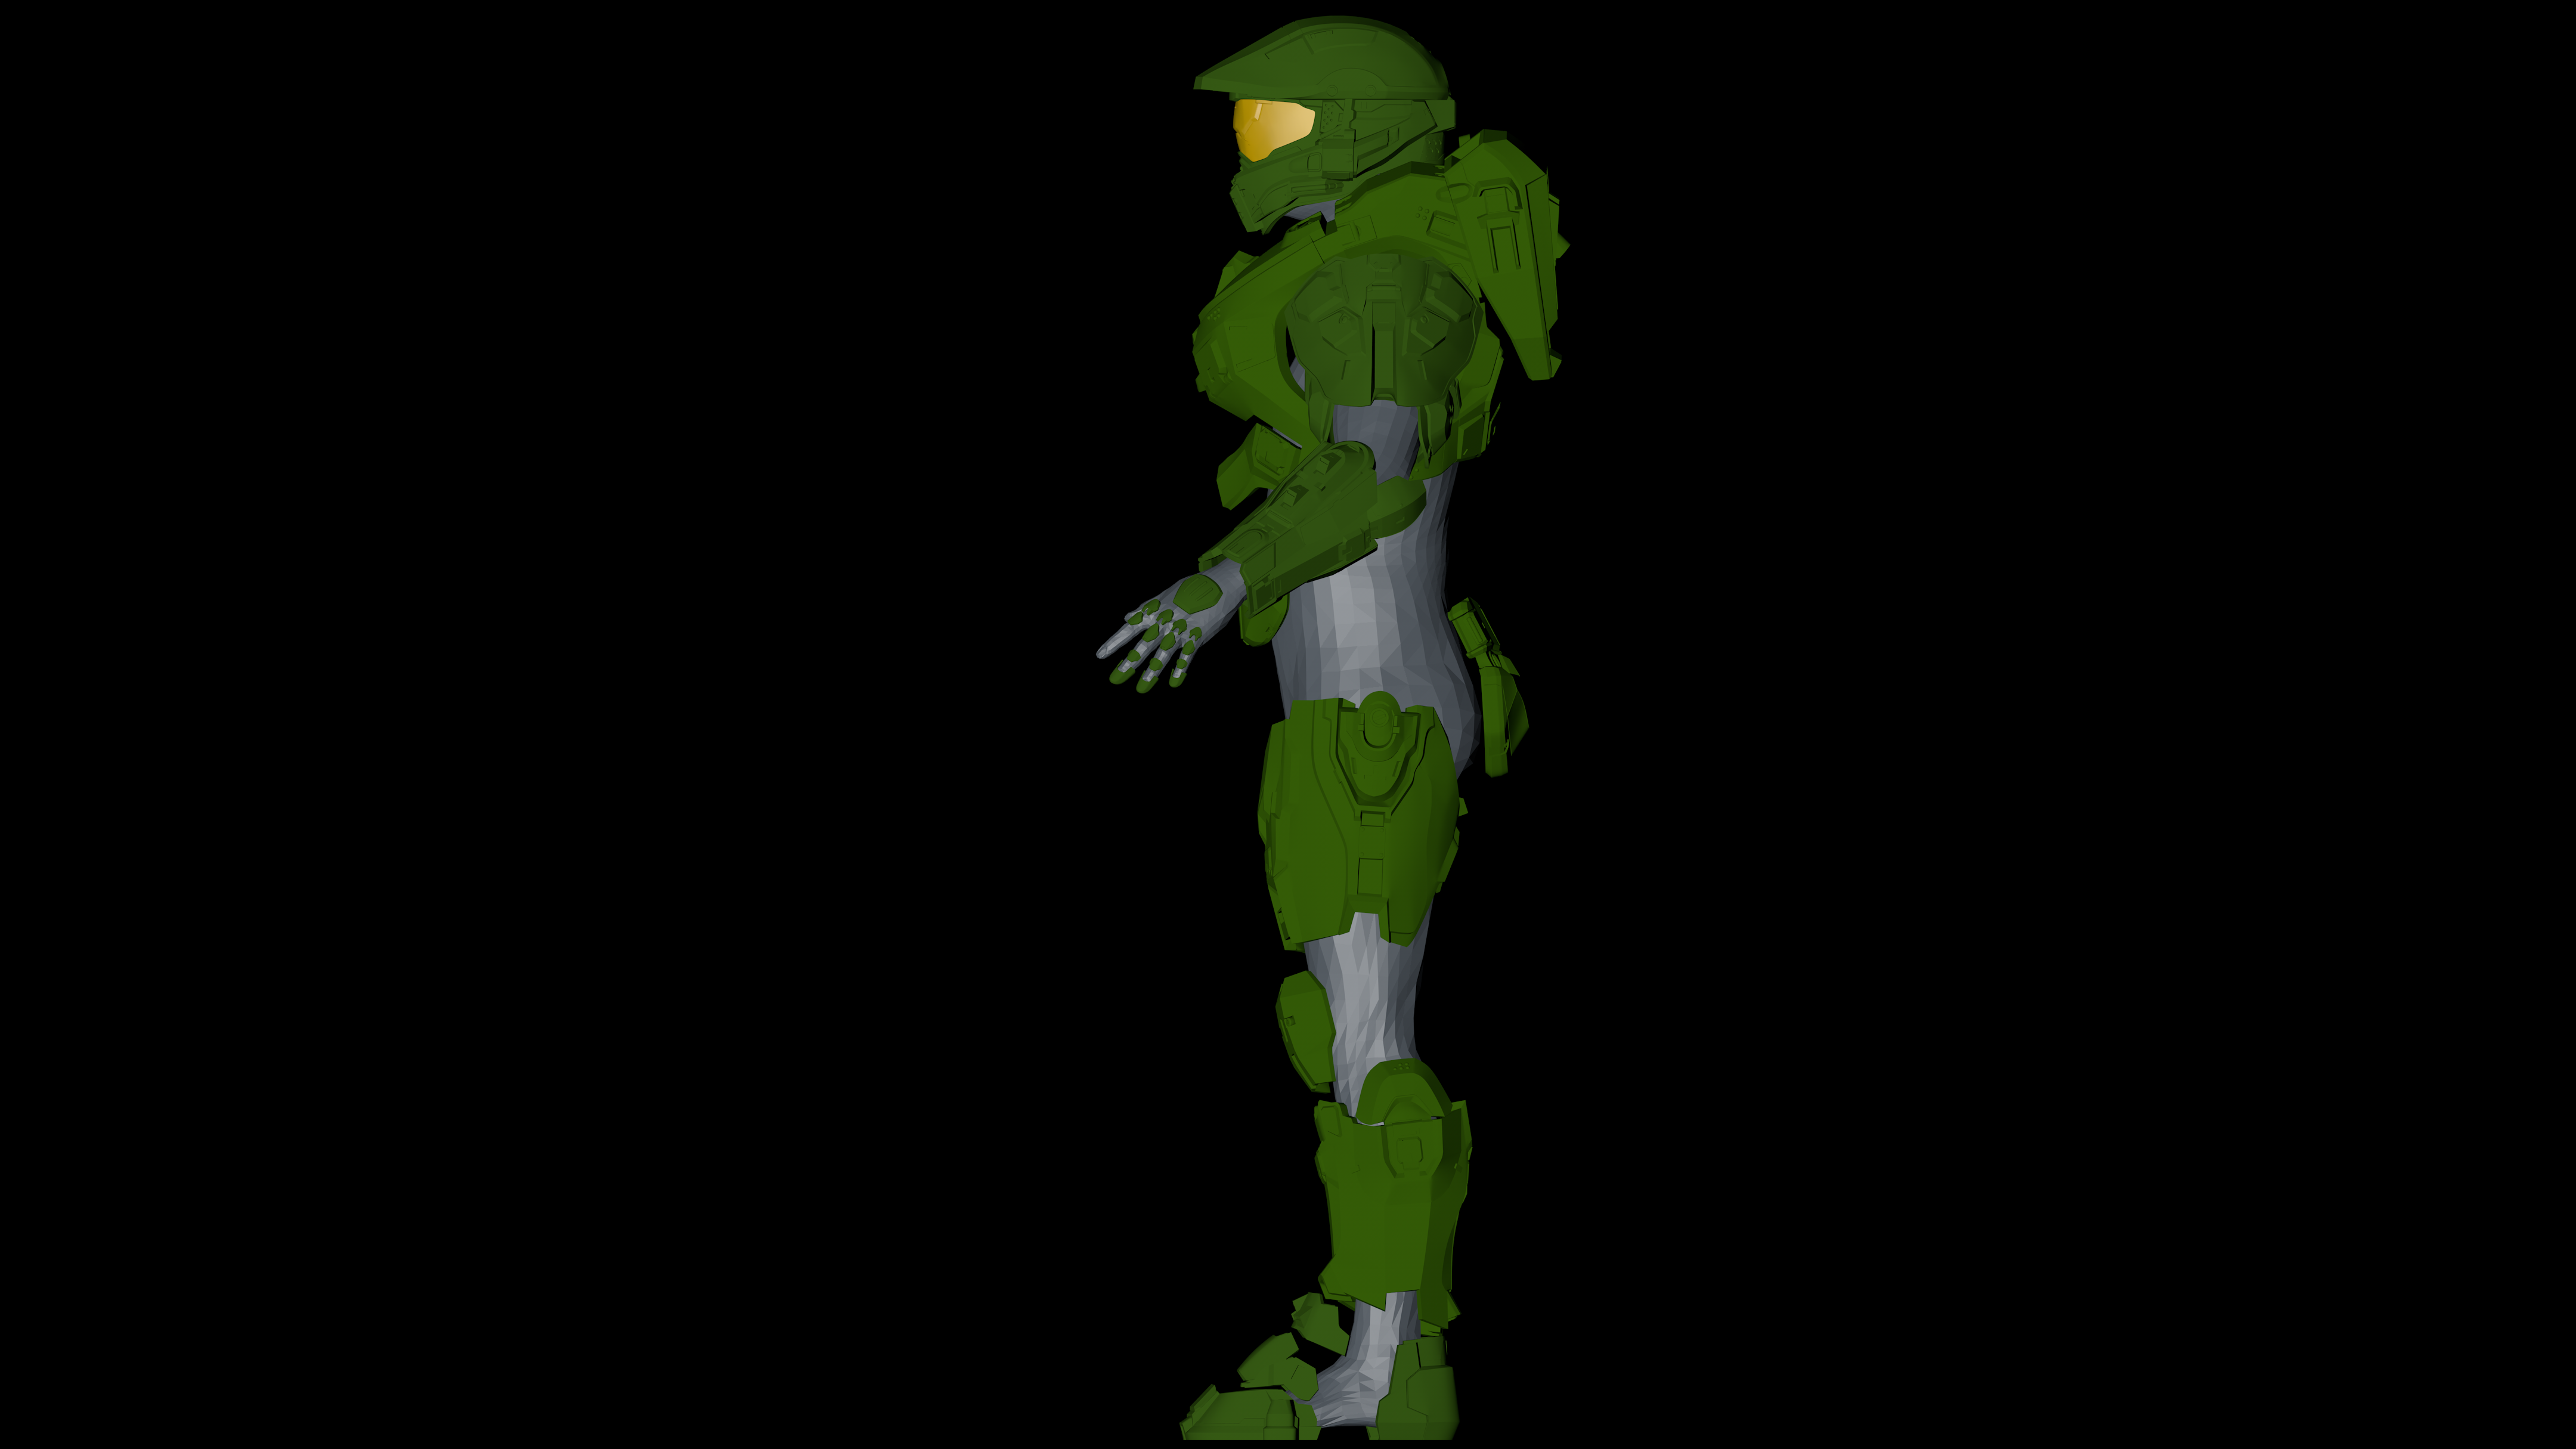 me with armor master chief 3.png